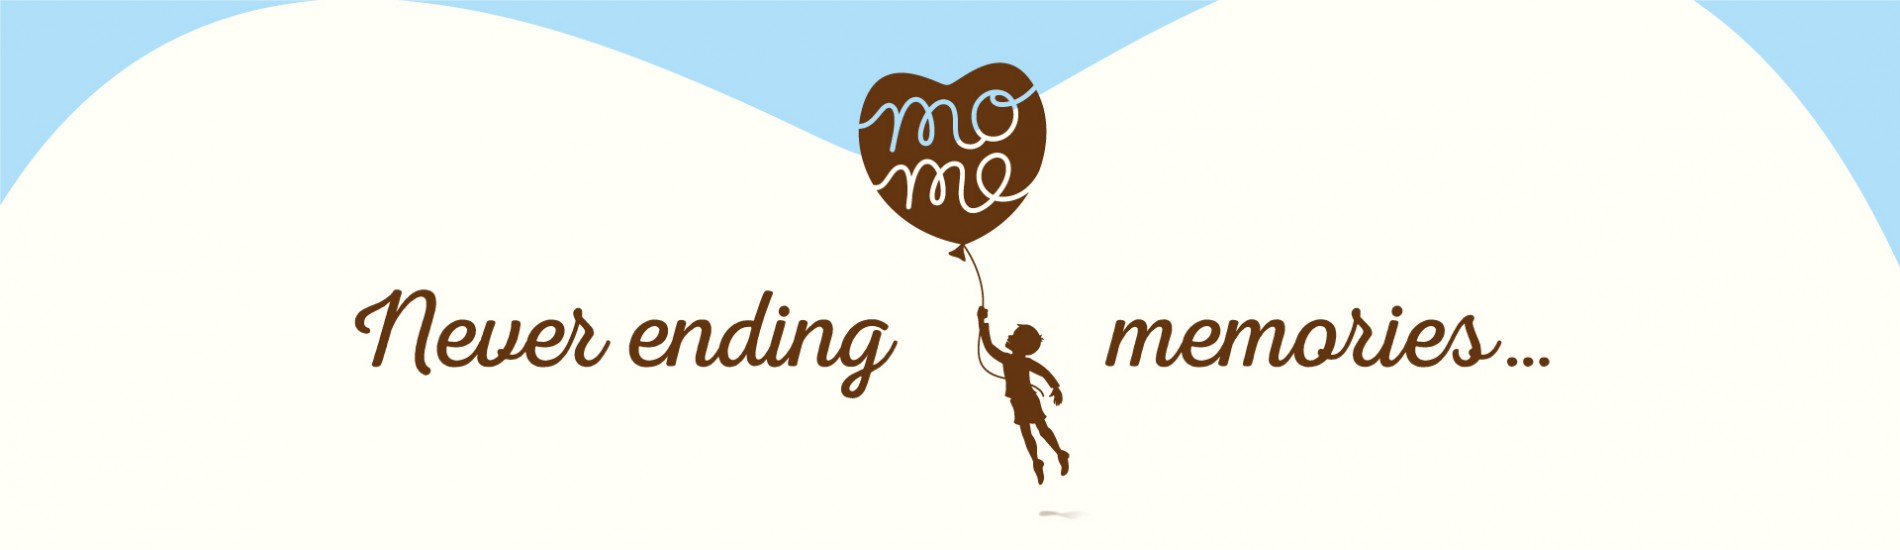 Quatre Mains package design - Package design mome branding, restyling, child, memories, balloon